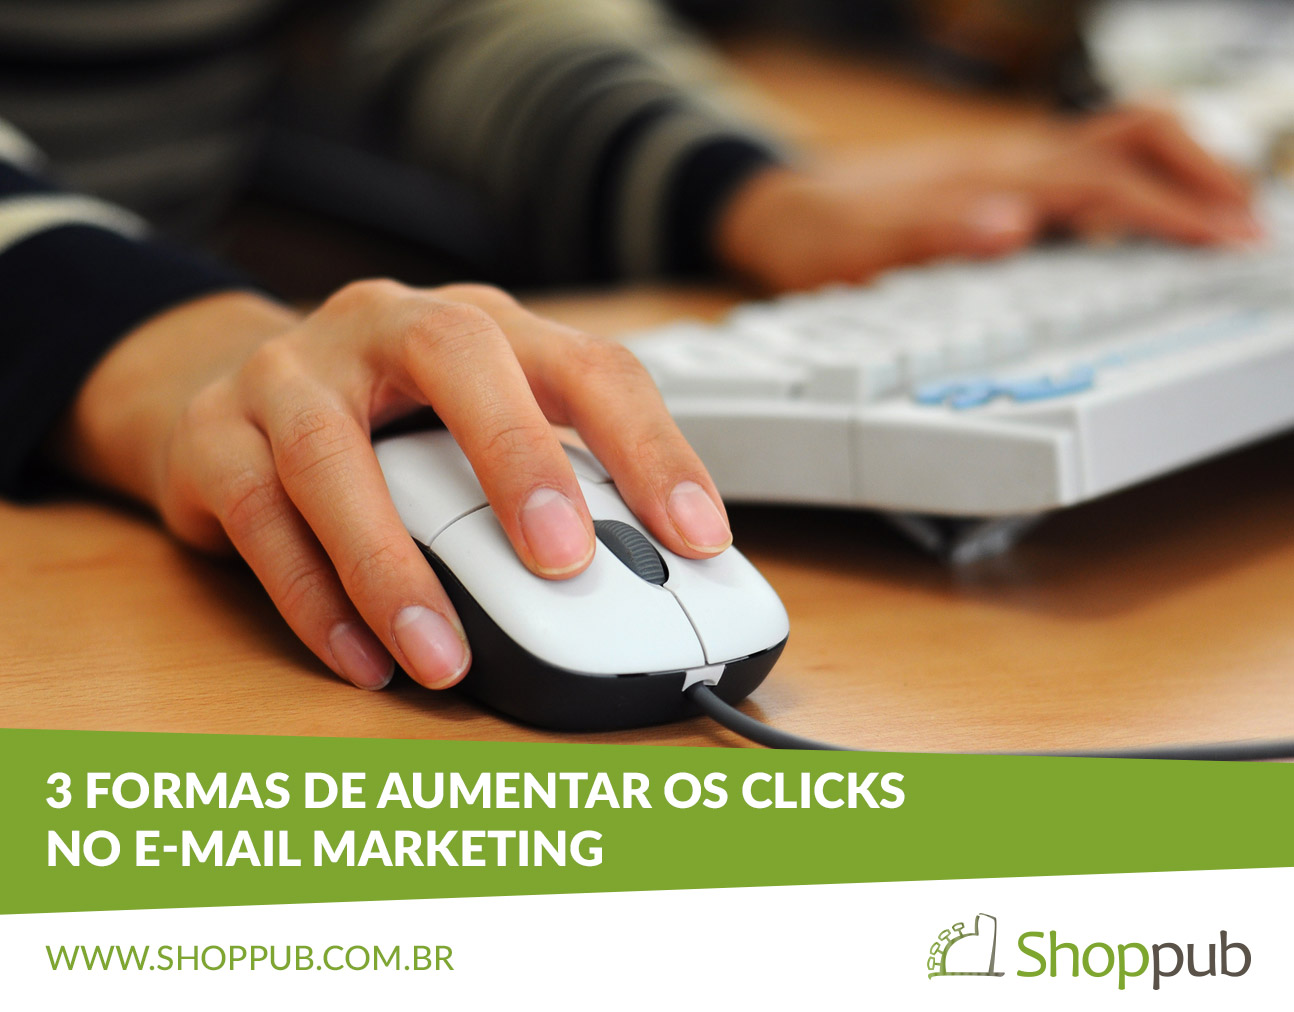 3 formas de aumentar os clicks no e-mail marketing